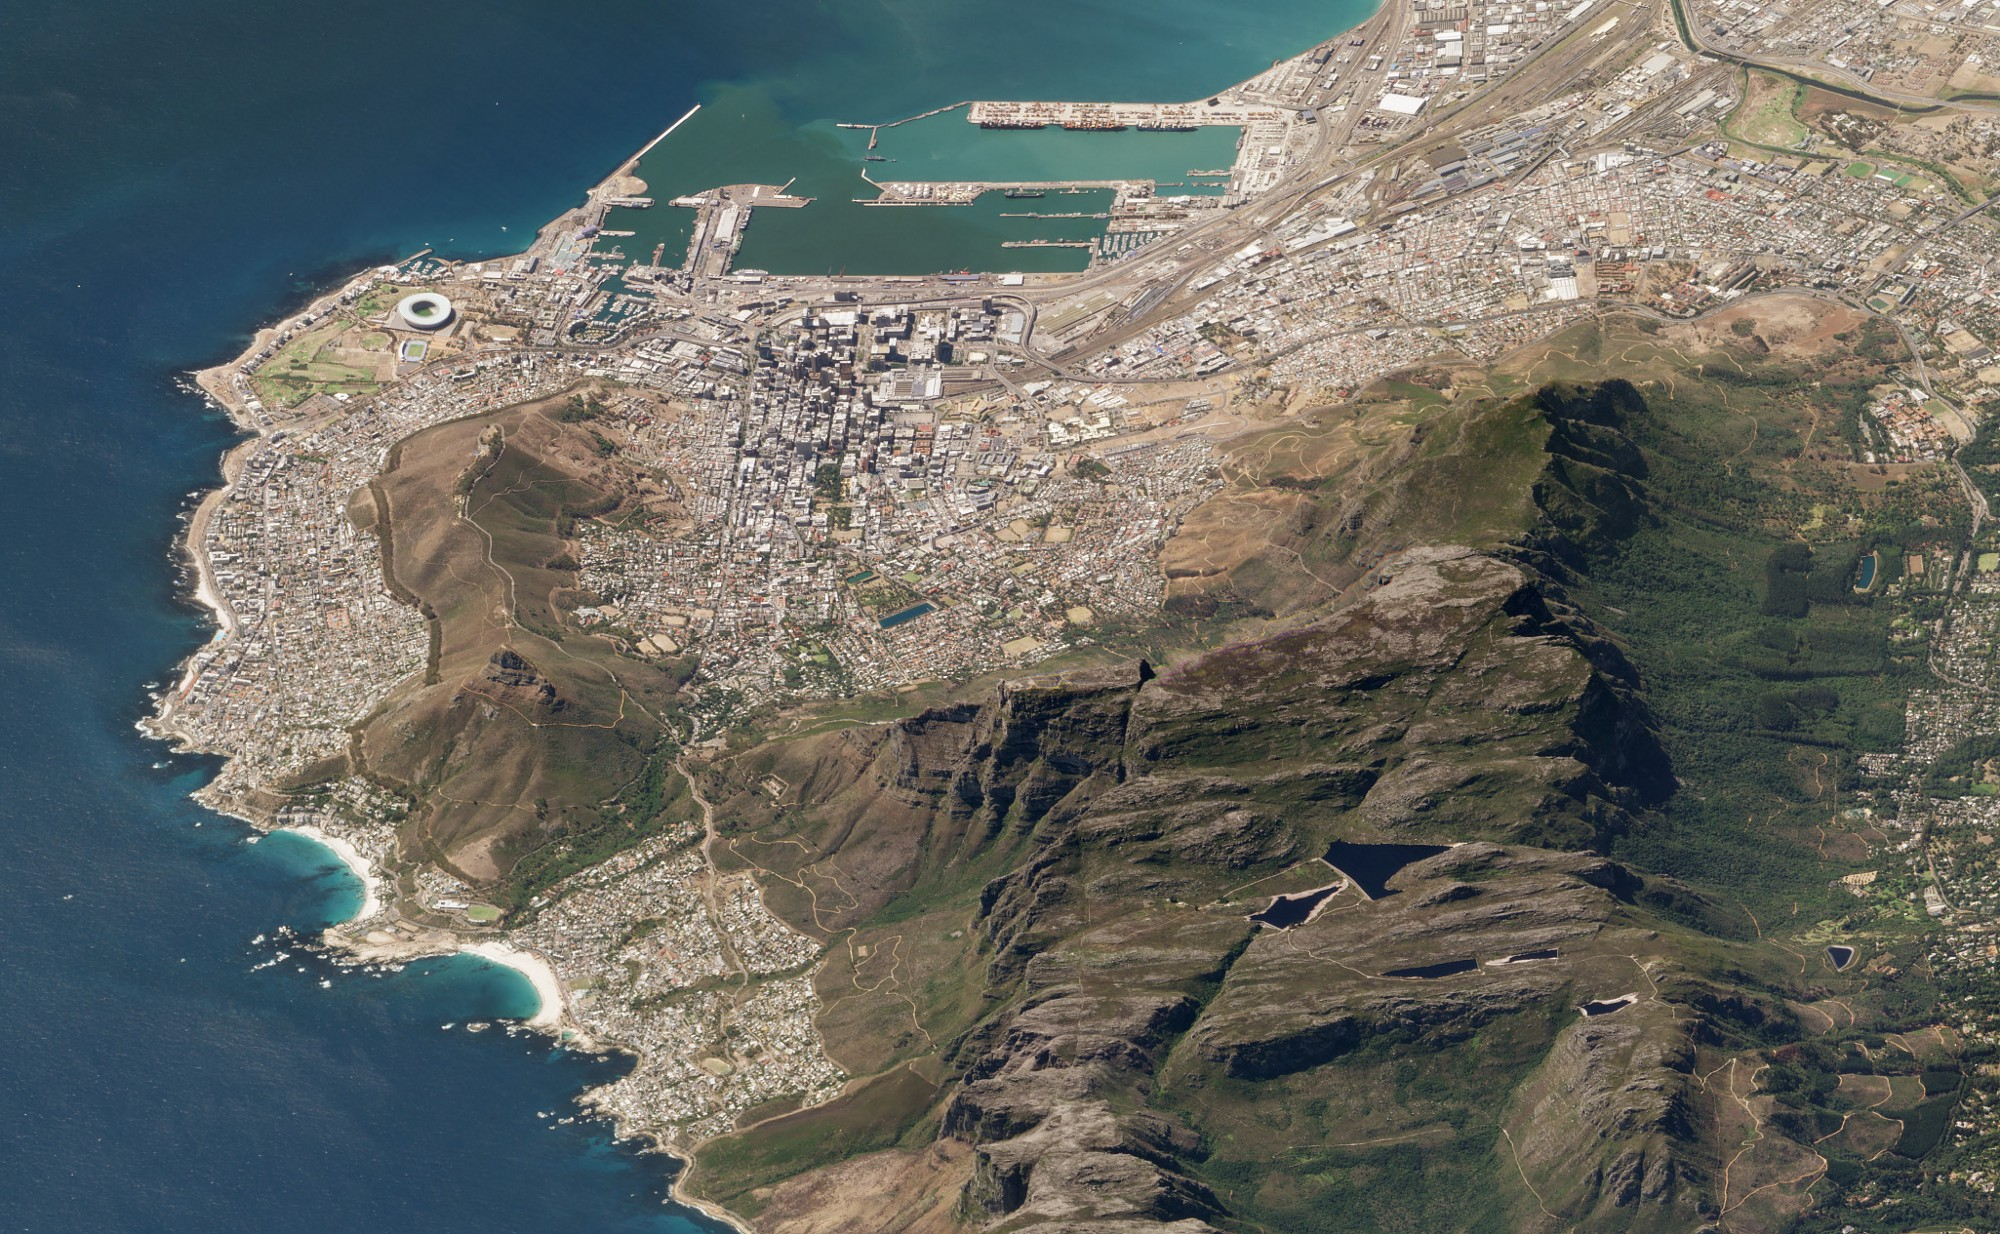 Satellite image of Cape Town and Table Mountain, March 19, 2018.